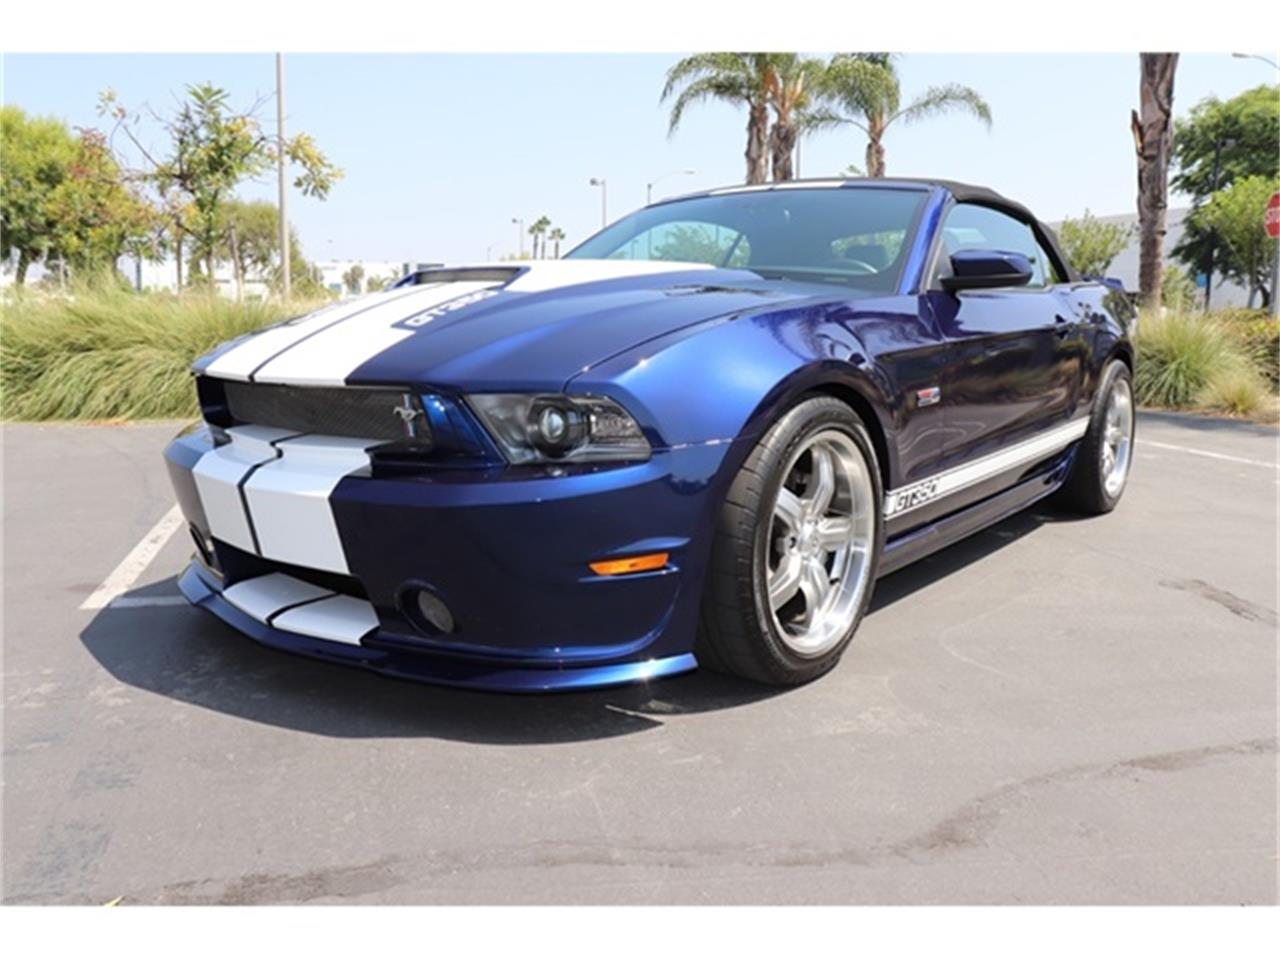 2012 Mustang For Sale >> 2012 Ford Mustang Gt For Sale Classiccars Com Cc 1141527